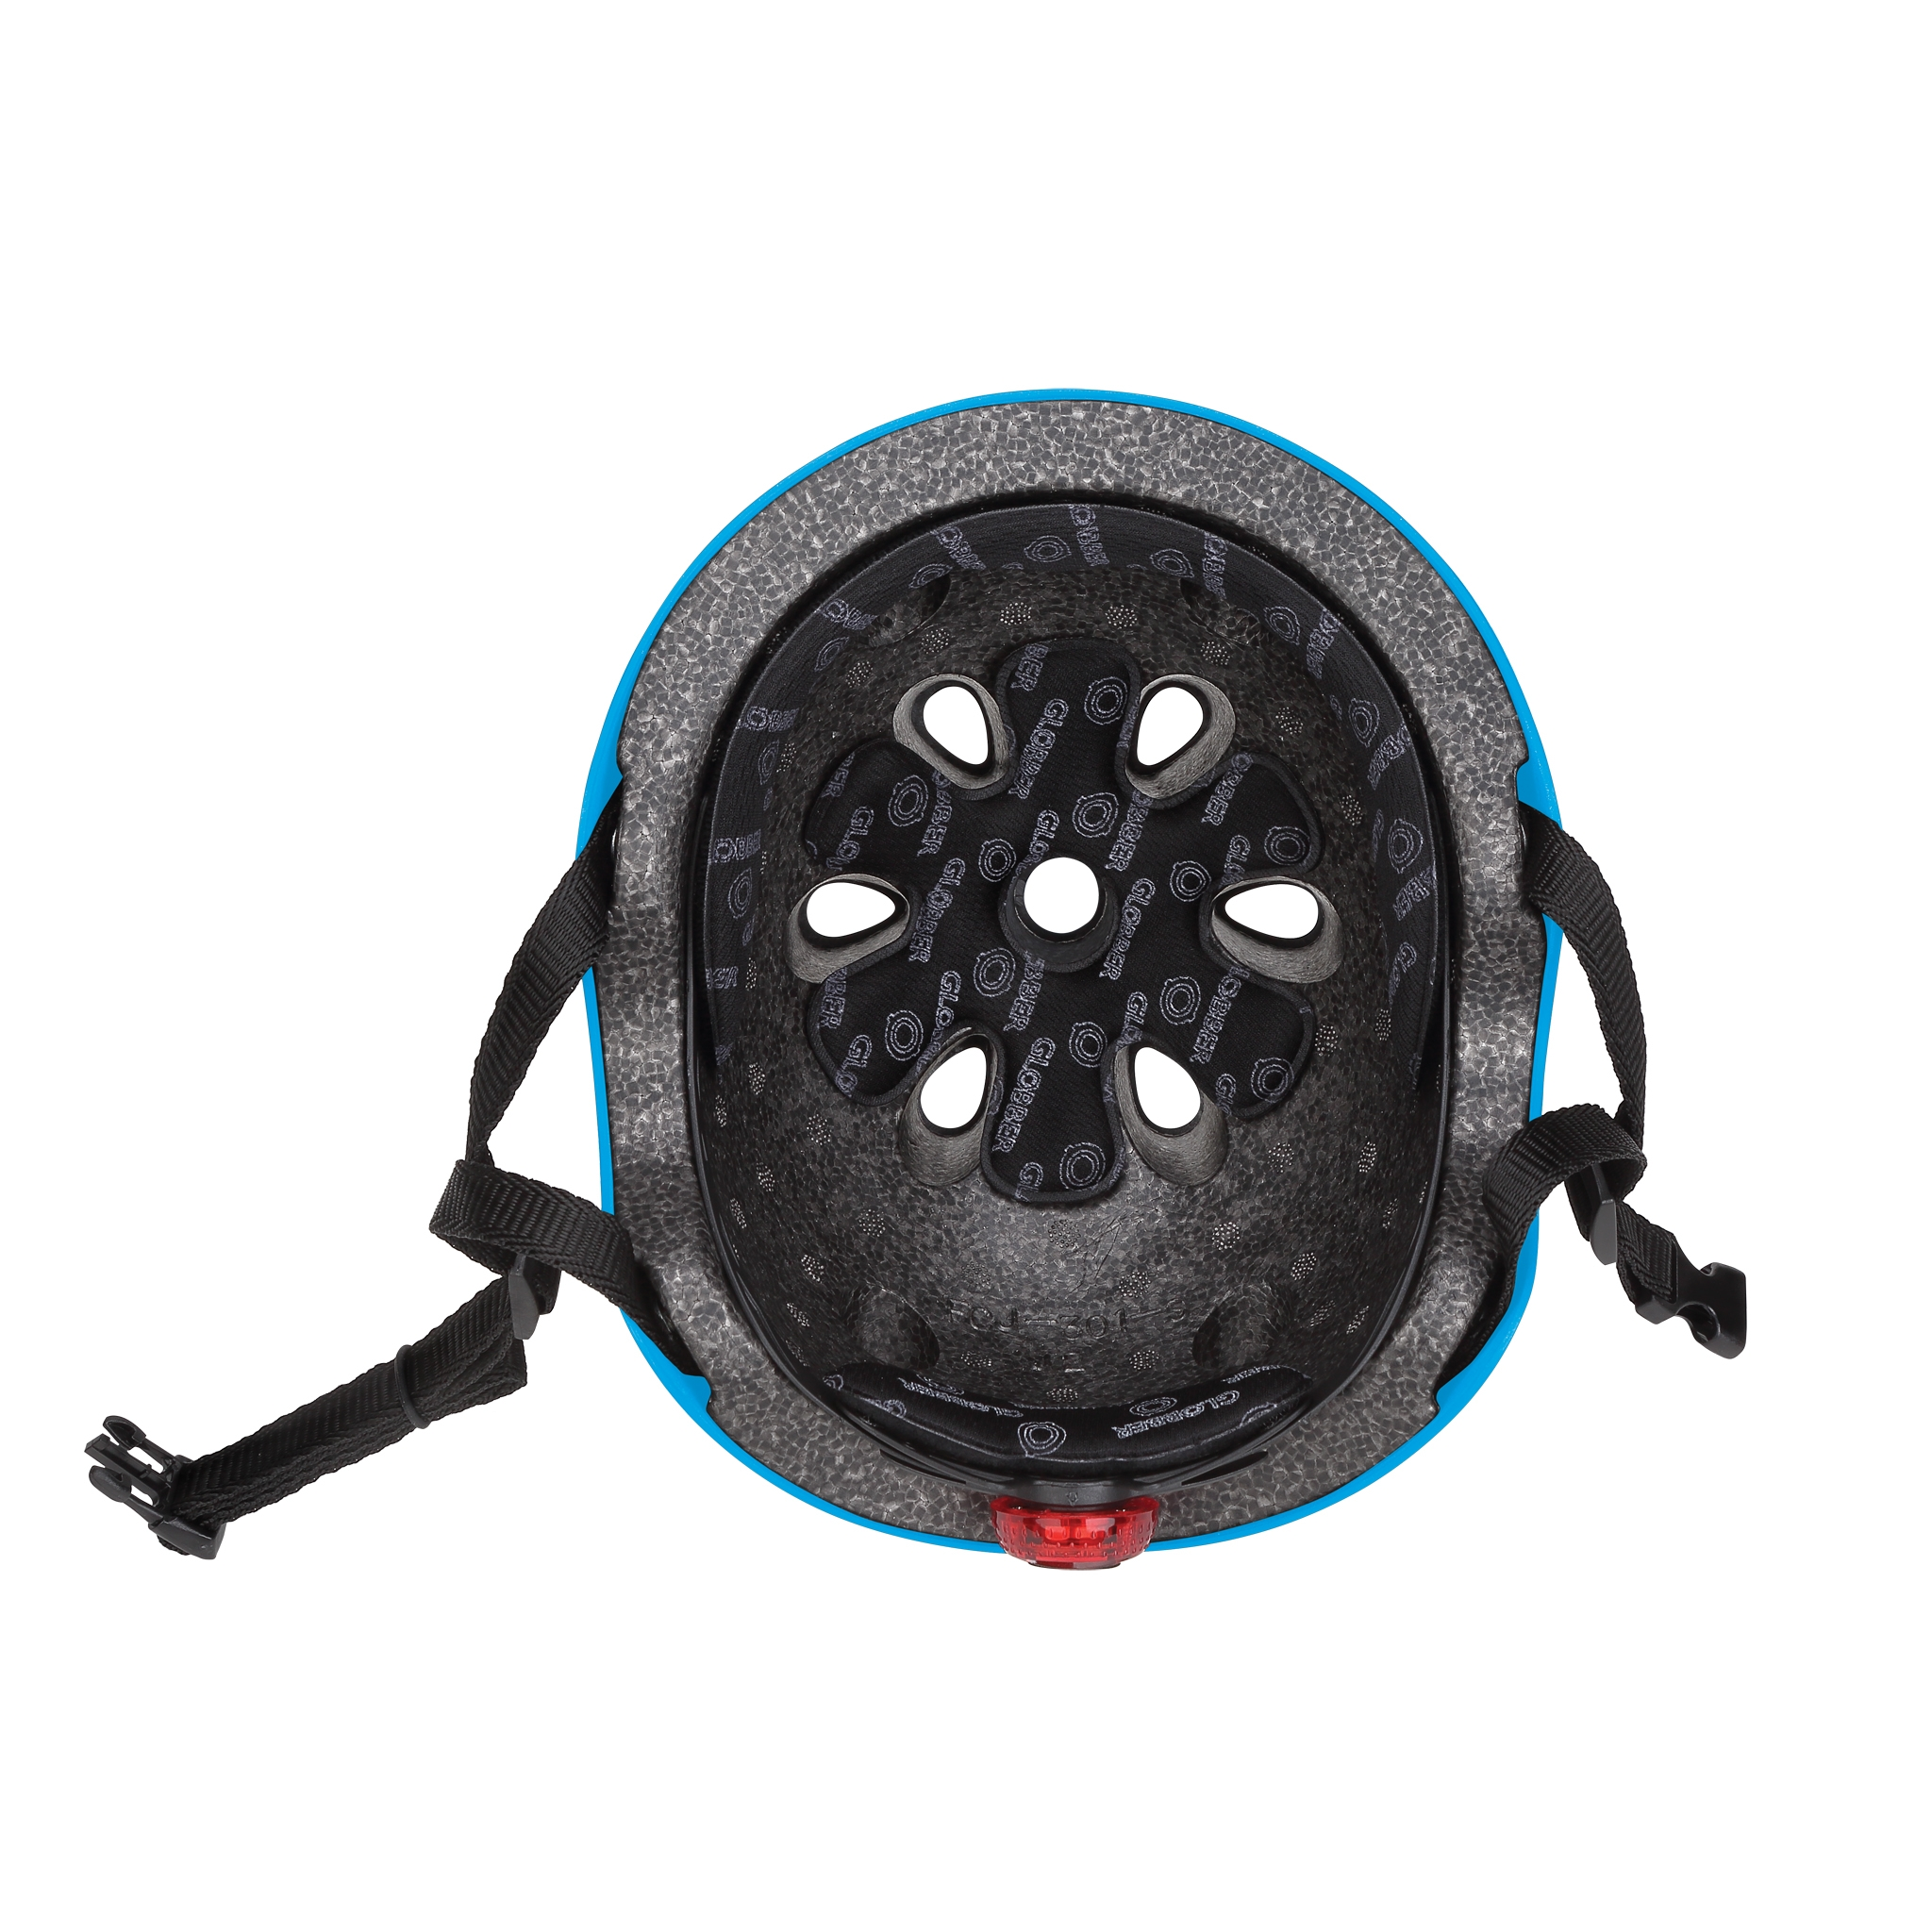 PRIMO-helmets-scooter-helmets-for-kids-with-comfortable-pads-sky-blue 4